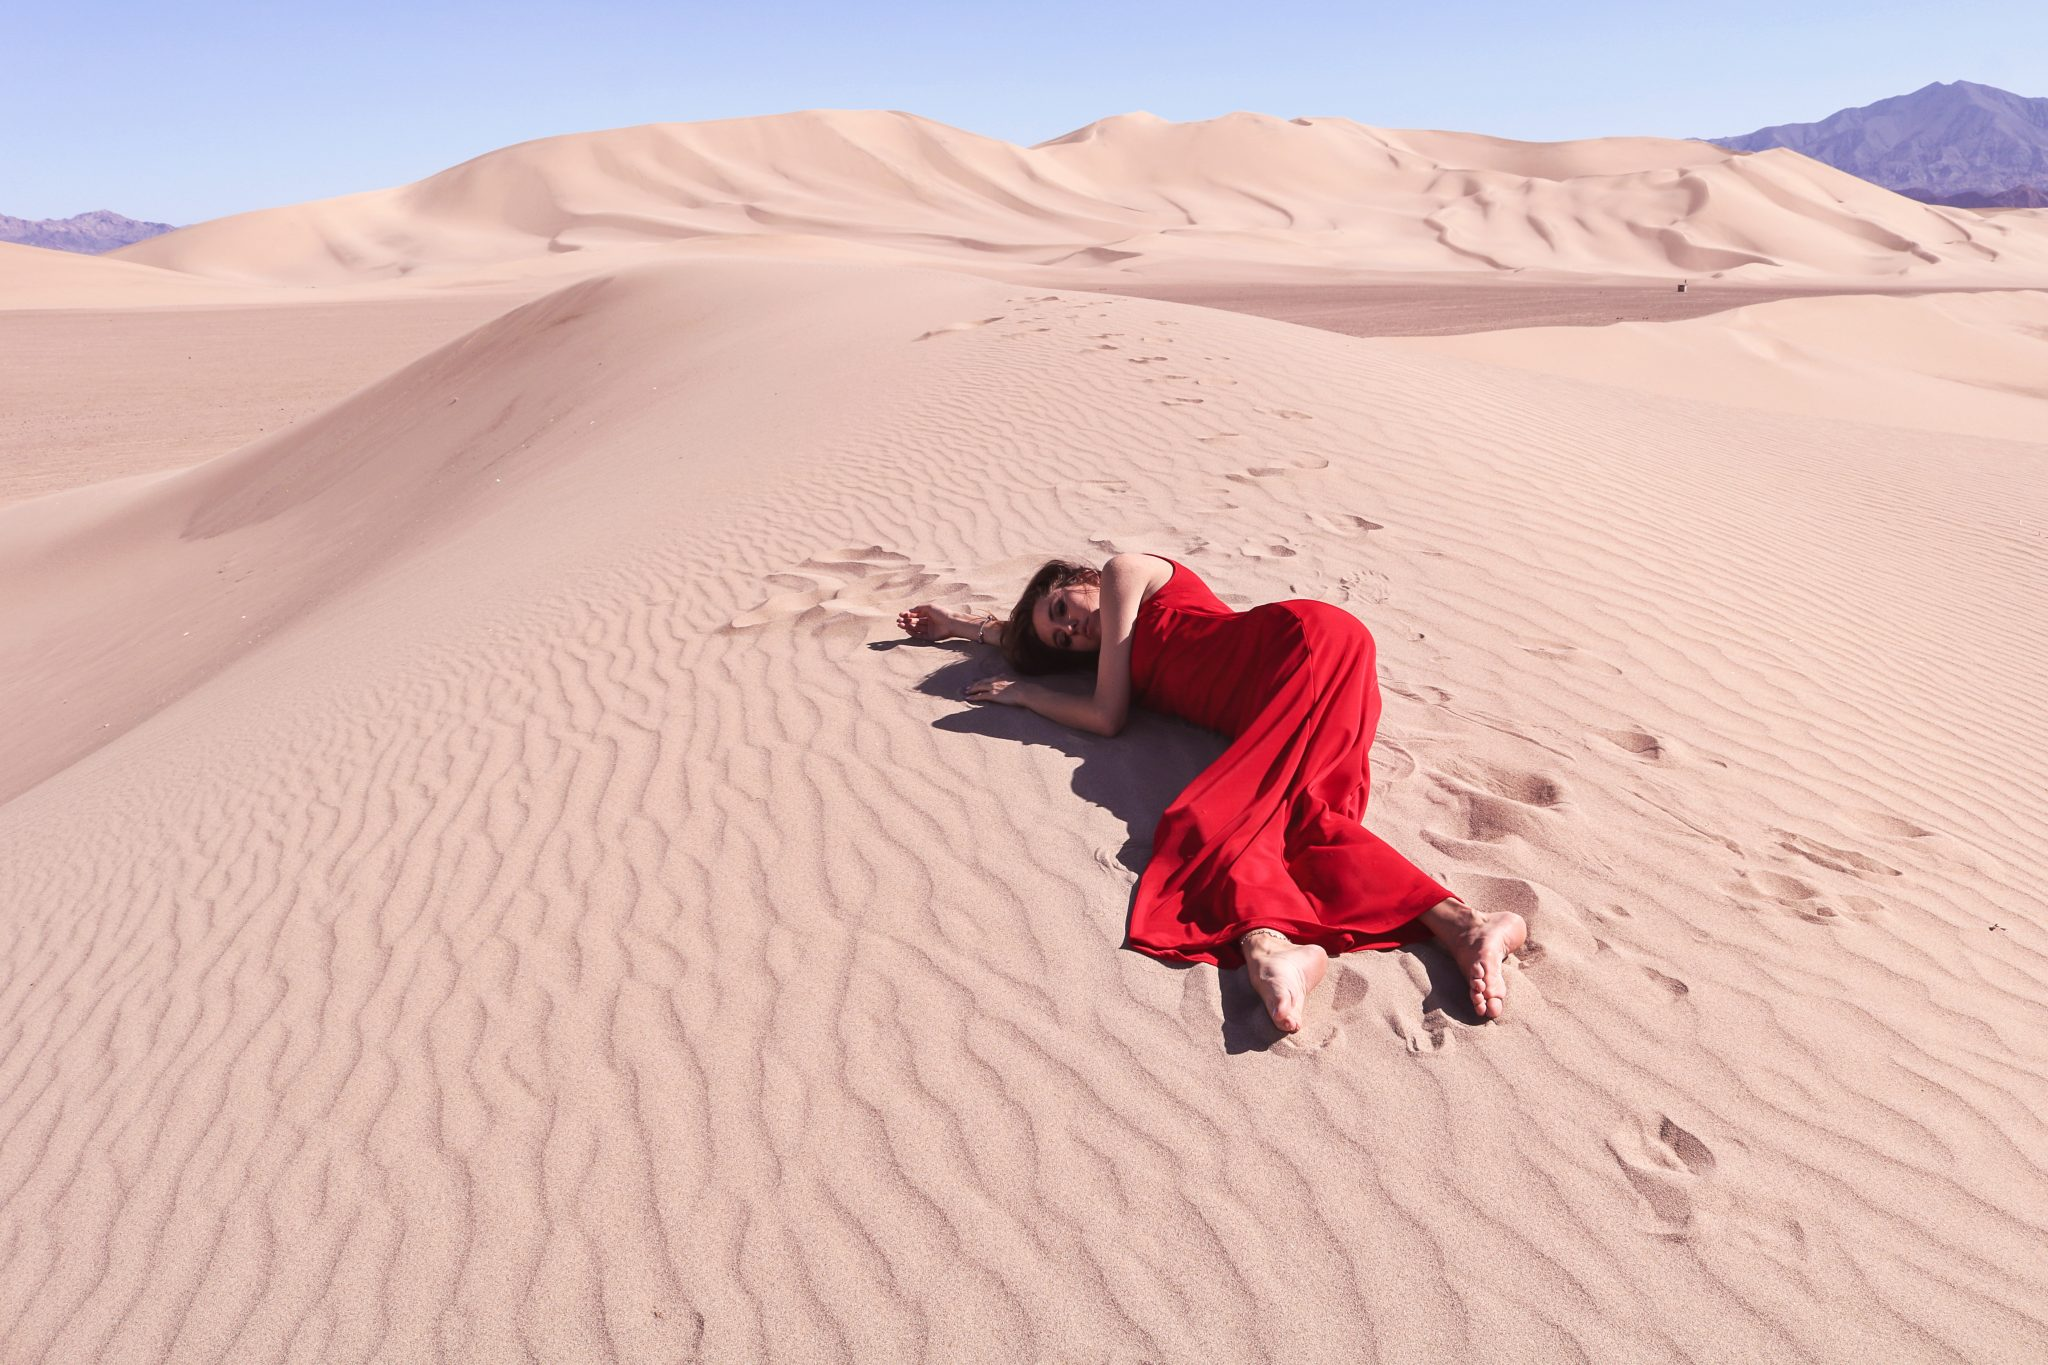 The-Hungarian-Brunette-Death-Valley-19-of-29.jpg